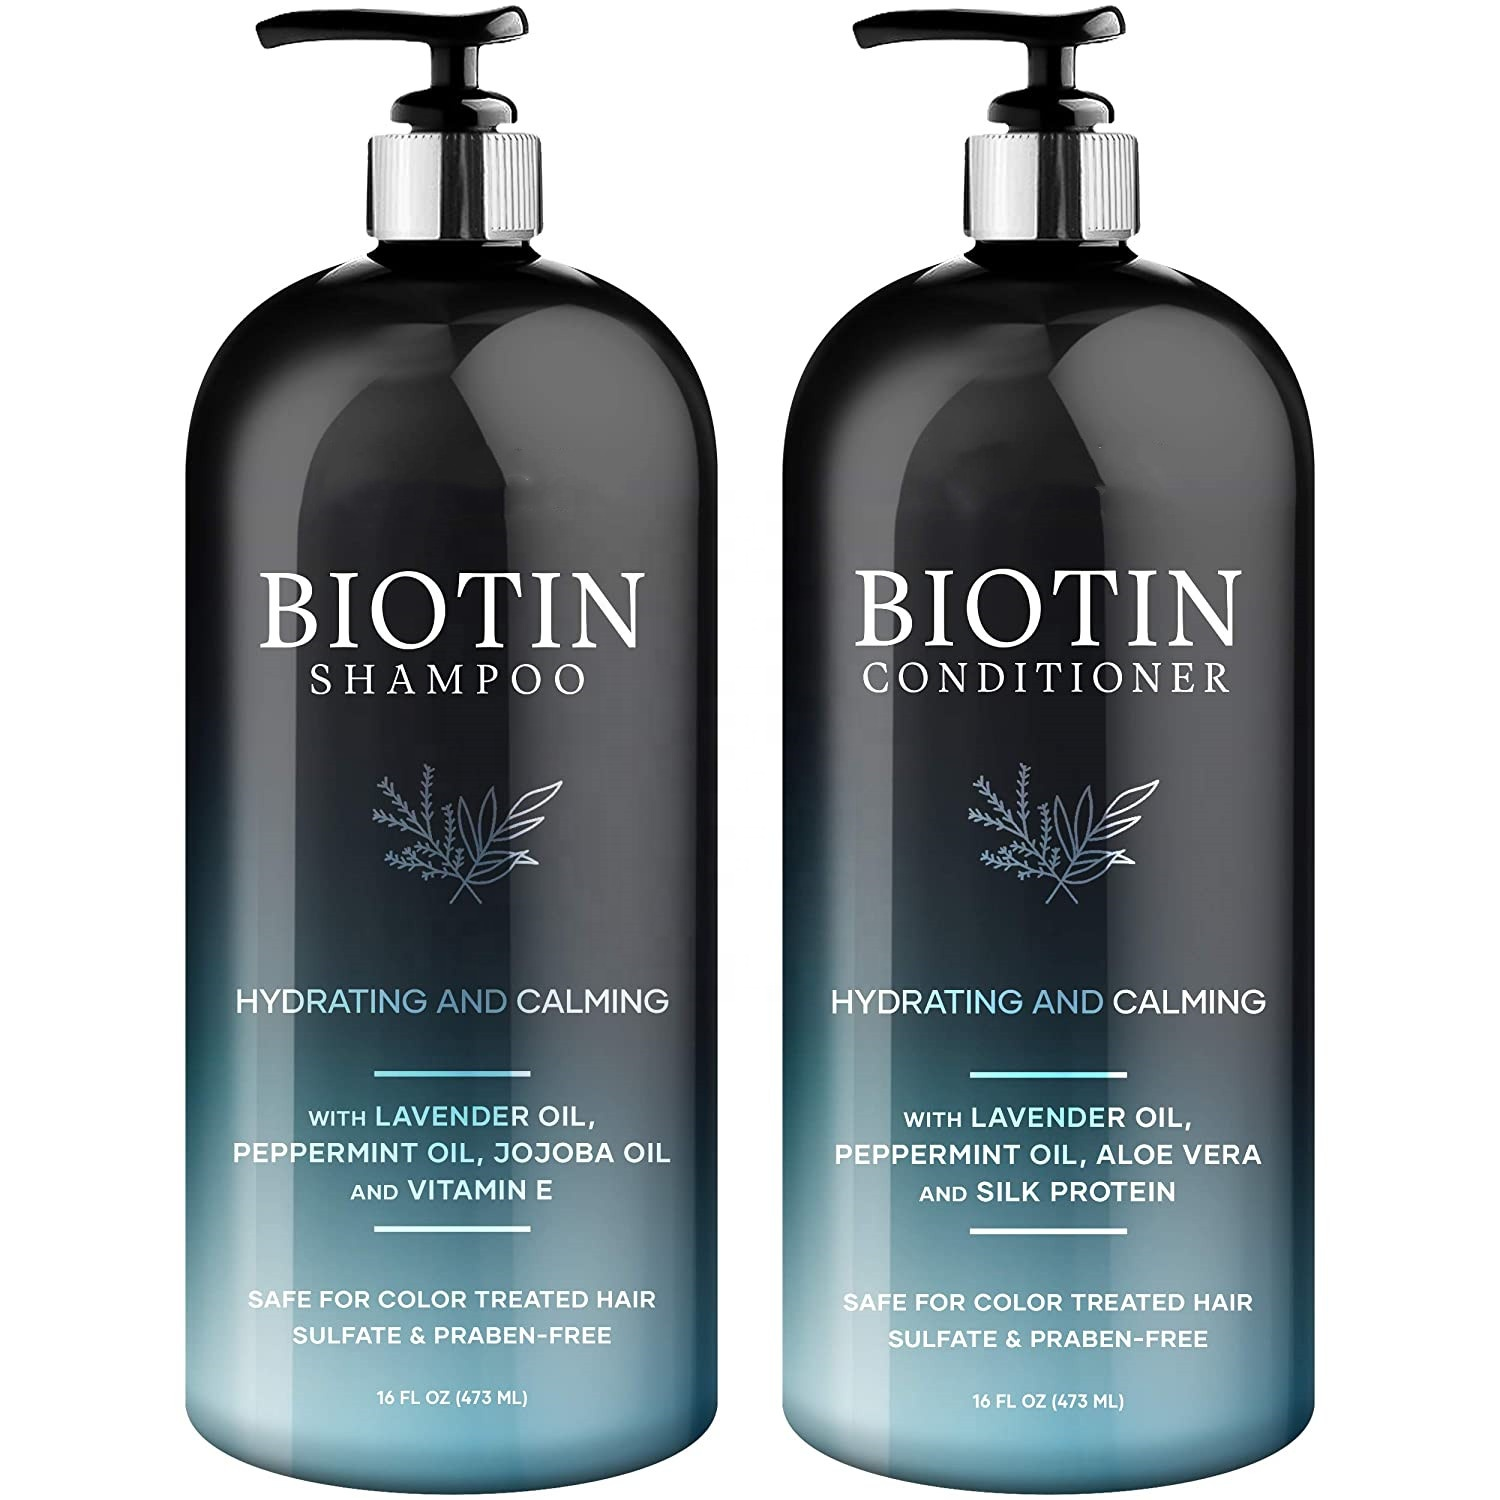 Private Label Hair Biotin Shampoo Best Hair Care Products For Blonde Hair Treatment Shampoo Buy Hair Shampoo Best Hair Care Products Hair Treatment Shampoo Product On Alibaba Com